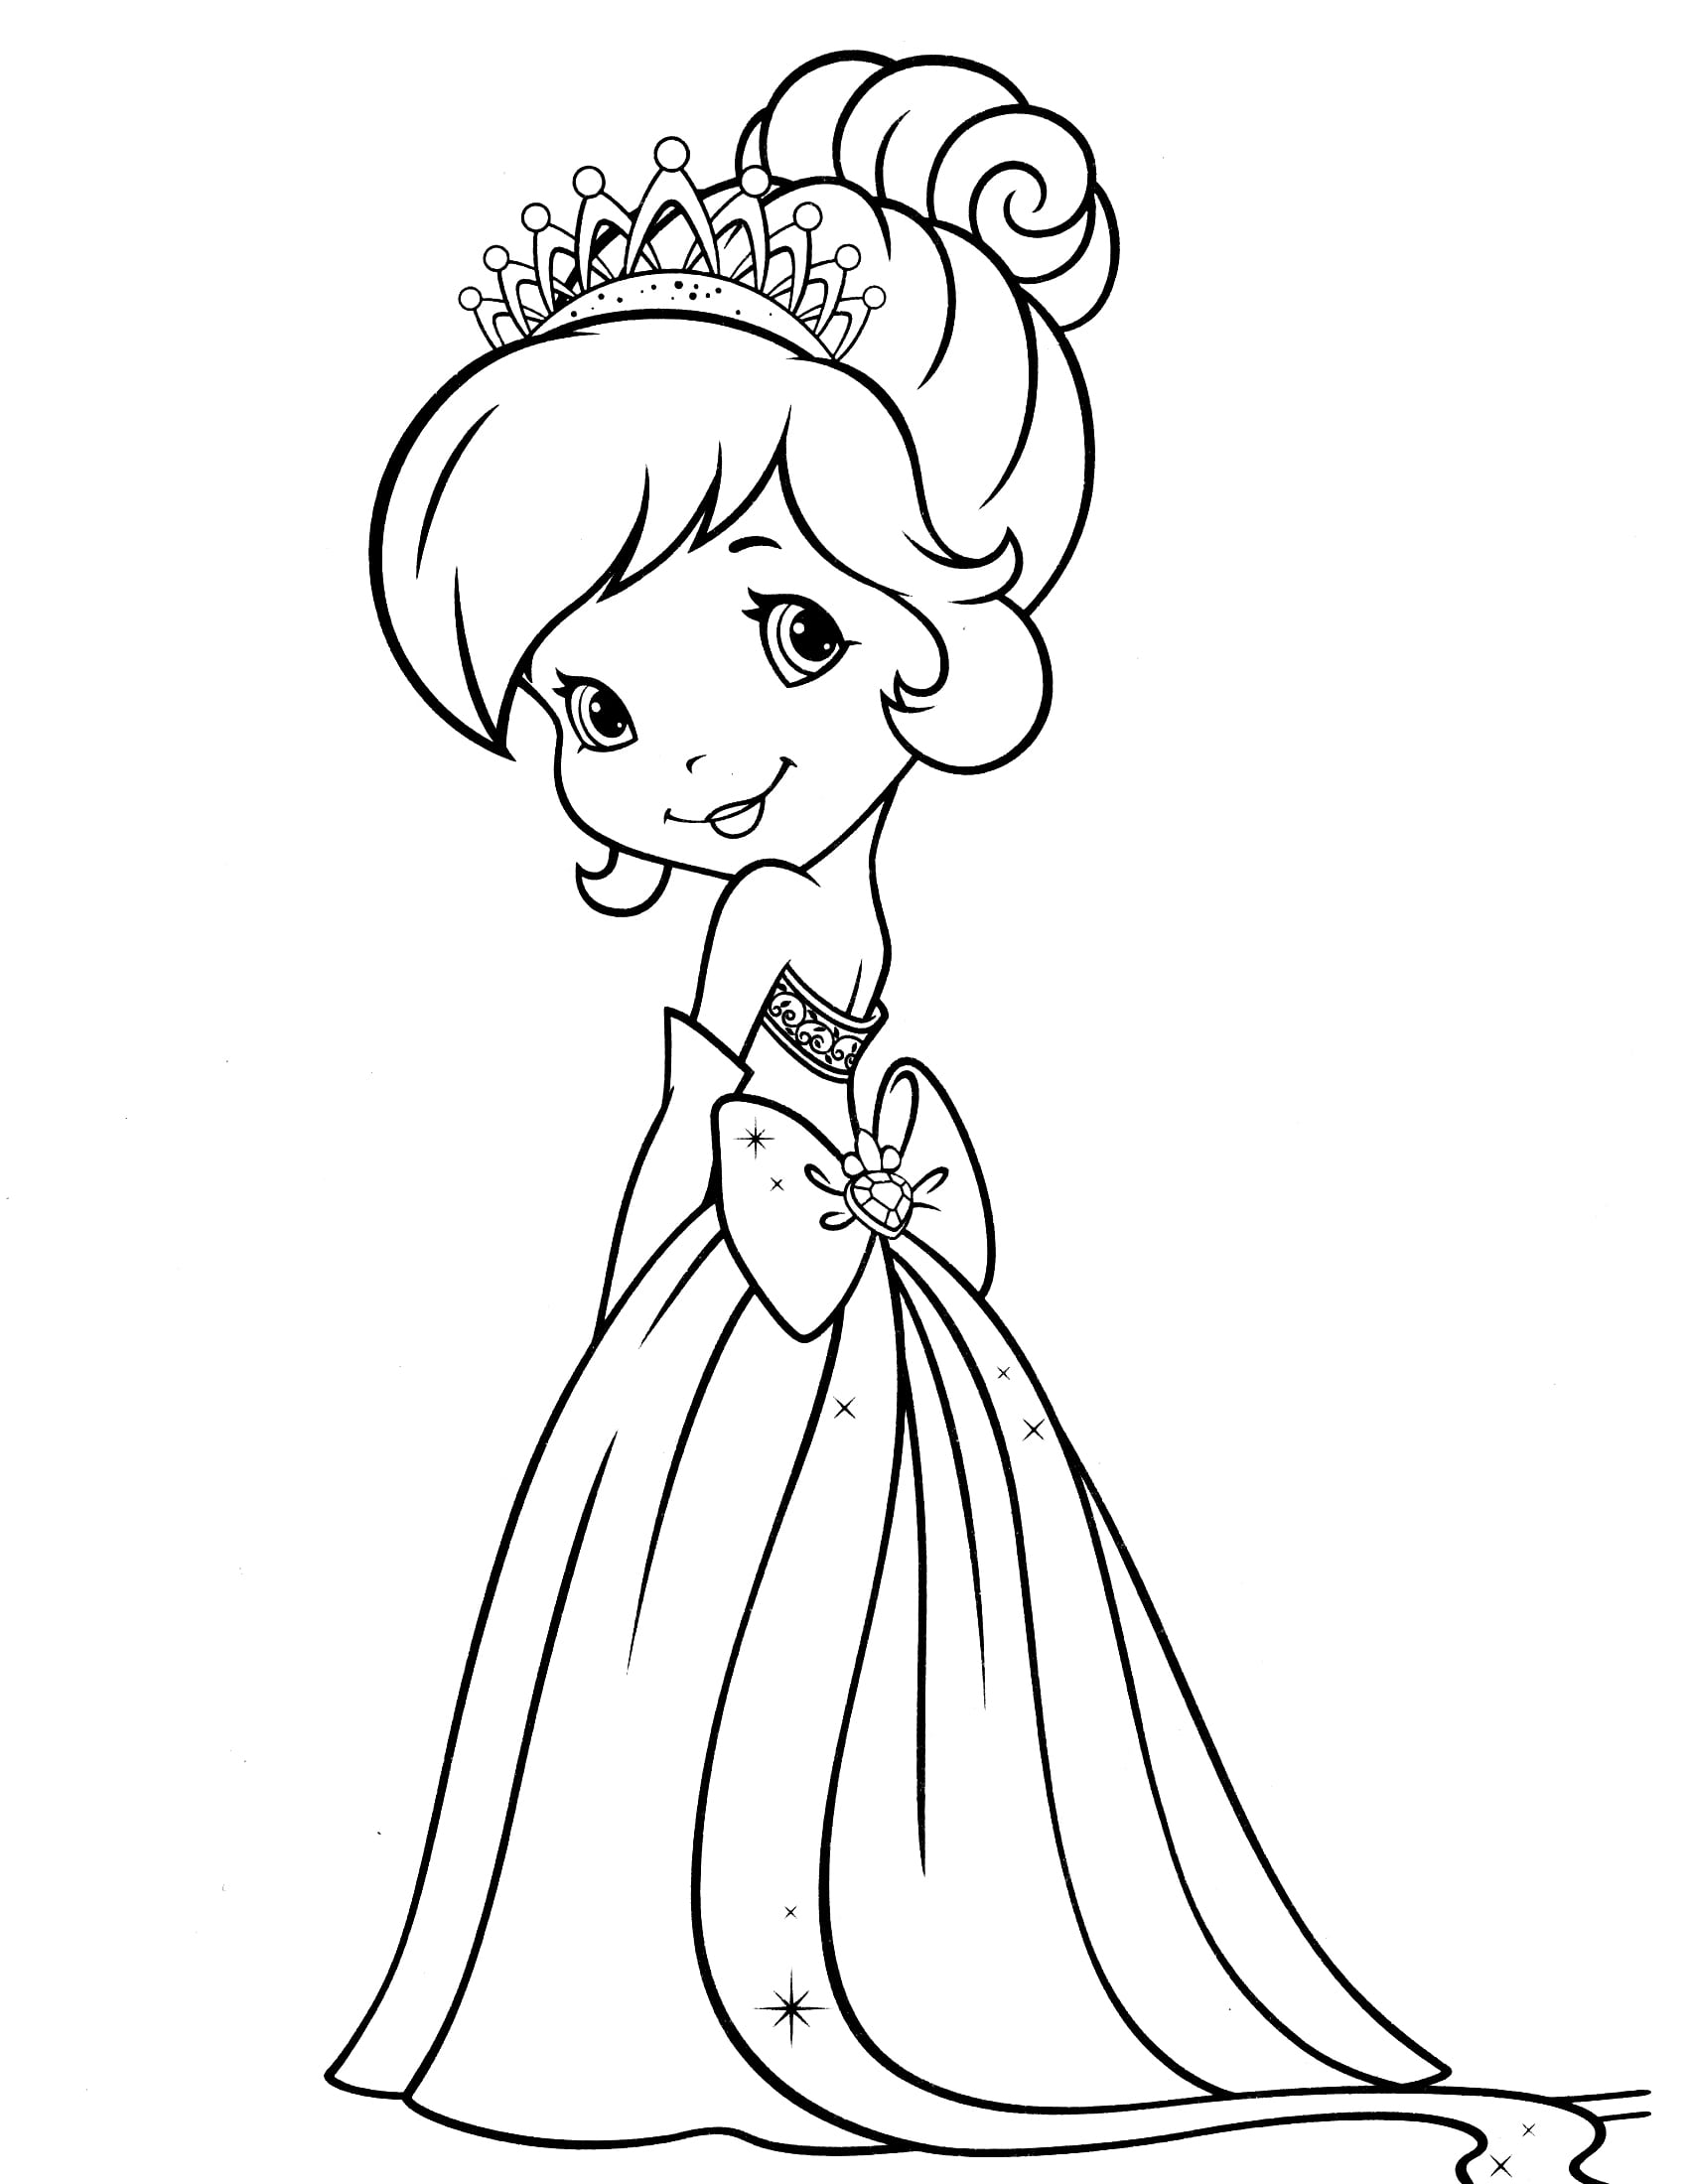 24 Strawberry Girl Coloring Pages Strawberry Shortcake Coloring